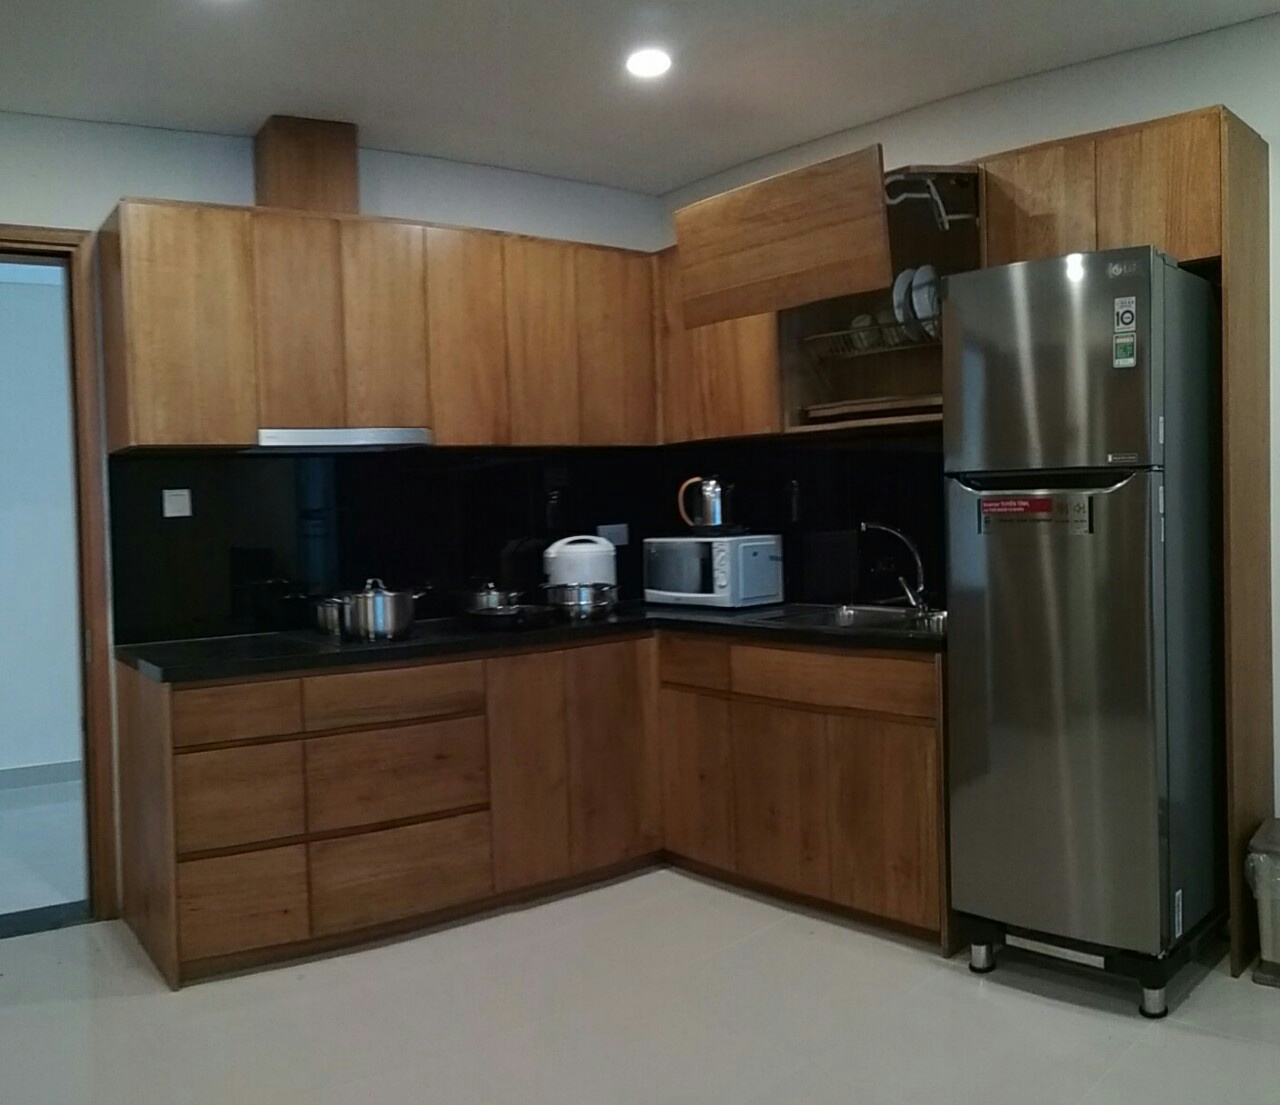 Efficiency Apartment For Rent: Studio Apartment For Rent In Maple ID A449